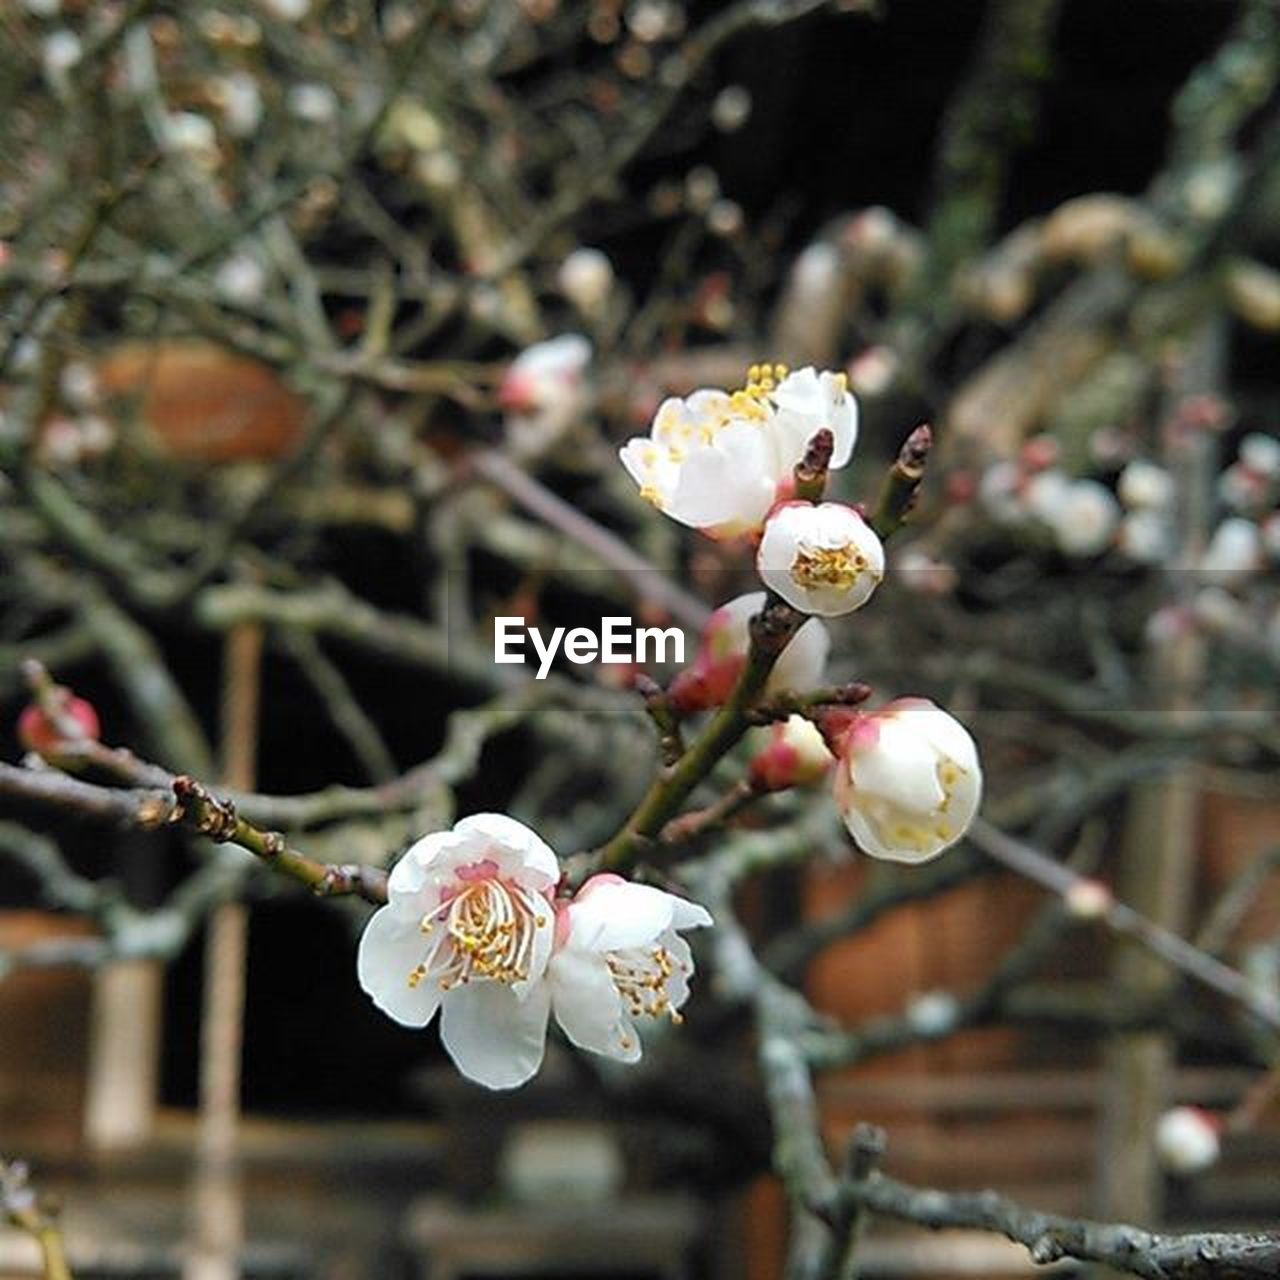 flower, fragility, white color, beauty in nature, blossom, nature, petal, growth, apple blossom, springtime, flower head, twig, branch, tree, botany, freshness, focus on foreground, plum blossom, orchard, day, no people, close-up, outdoors, blooming